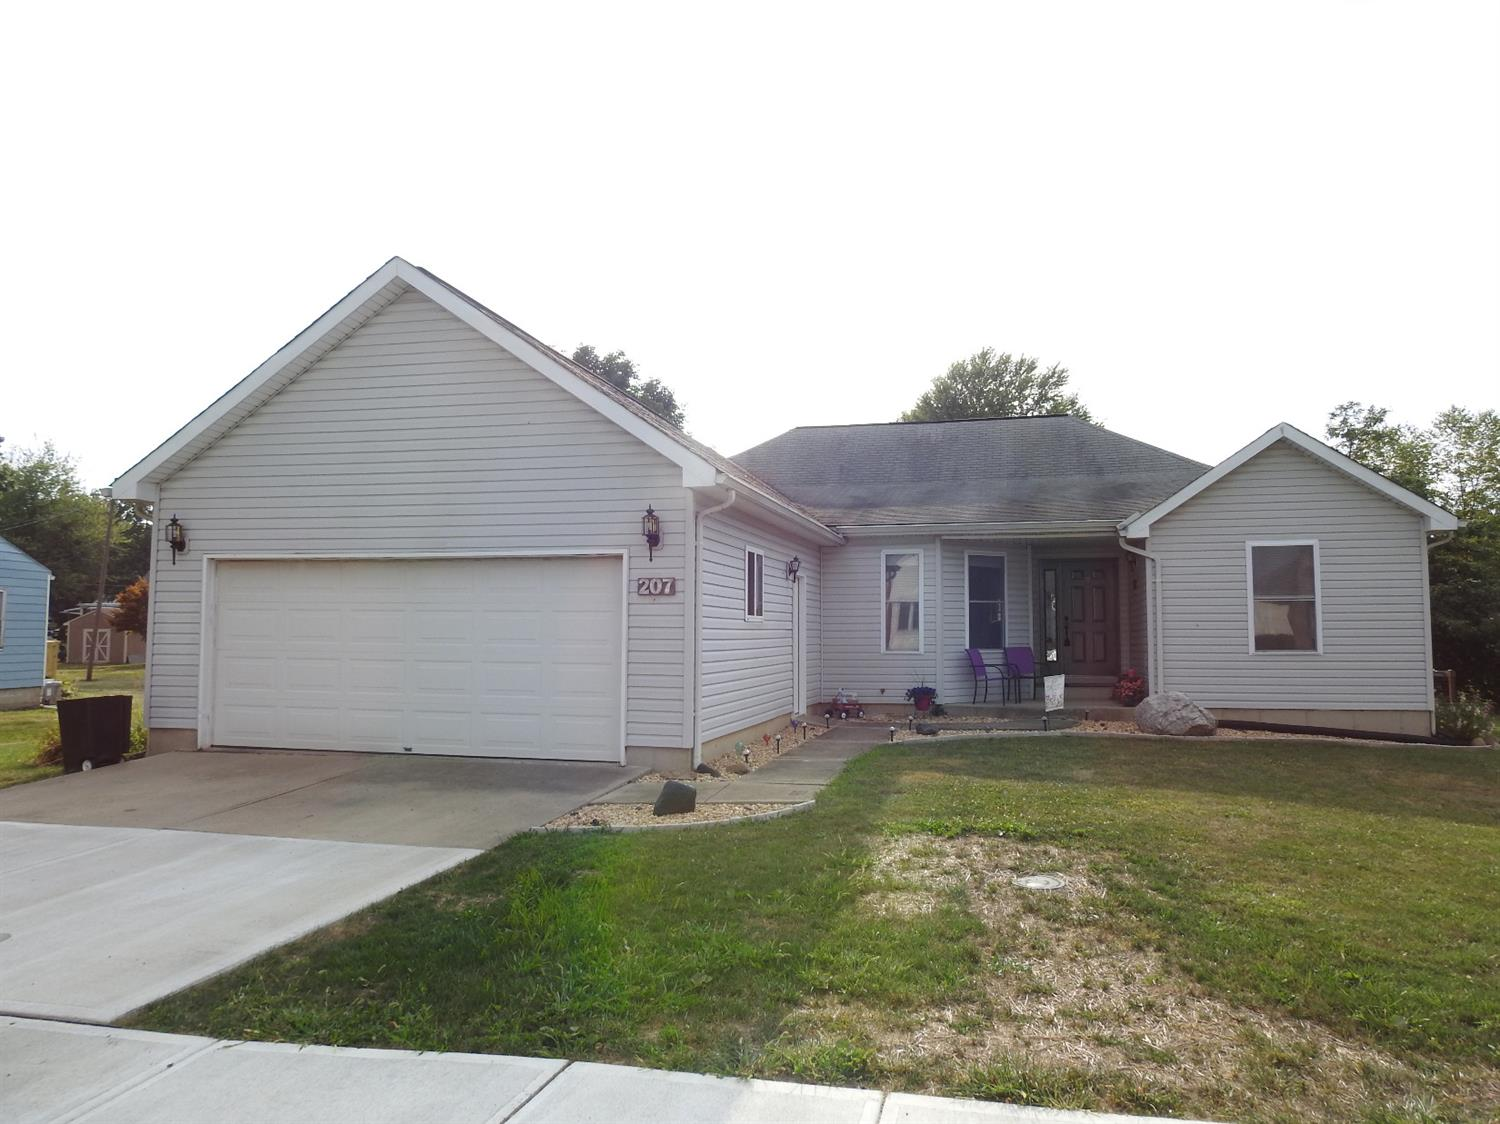 207 Eaton St Preble County, OH